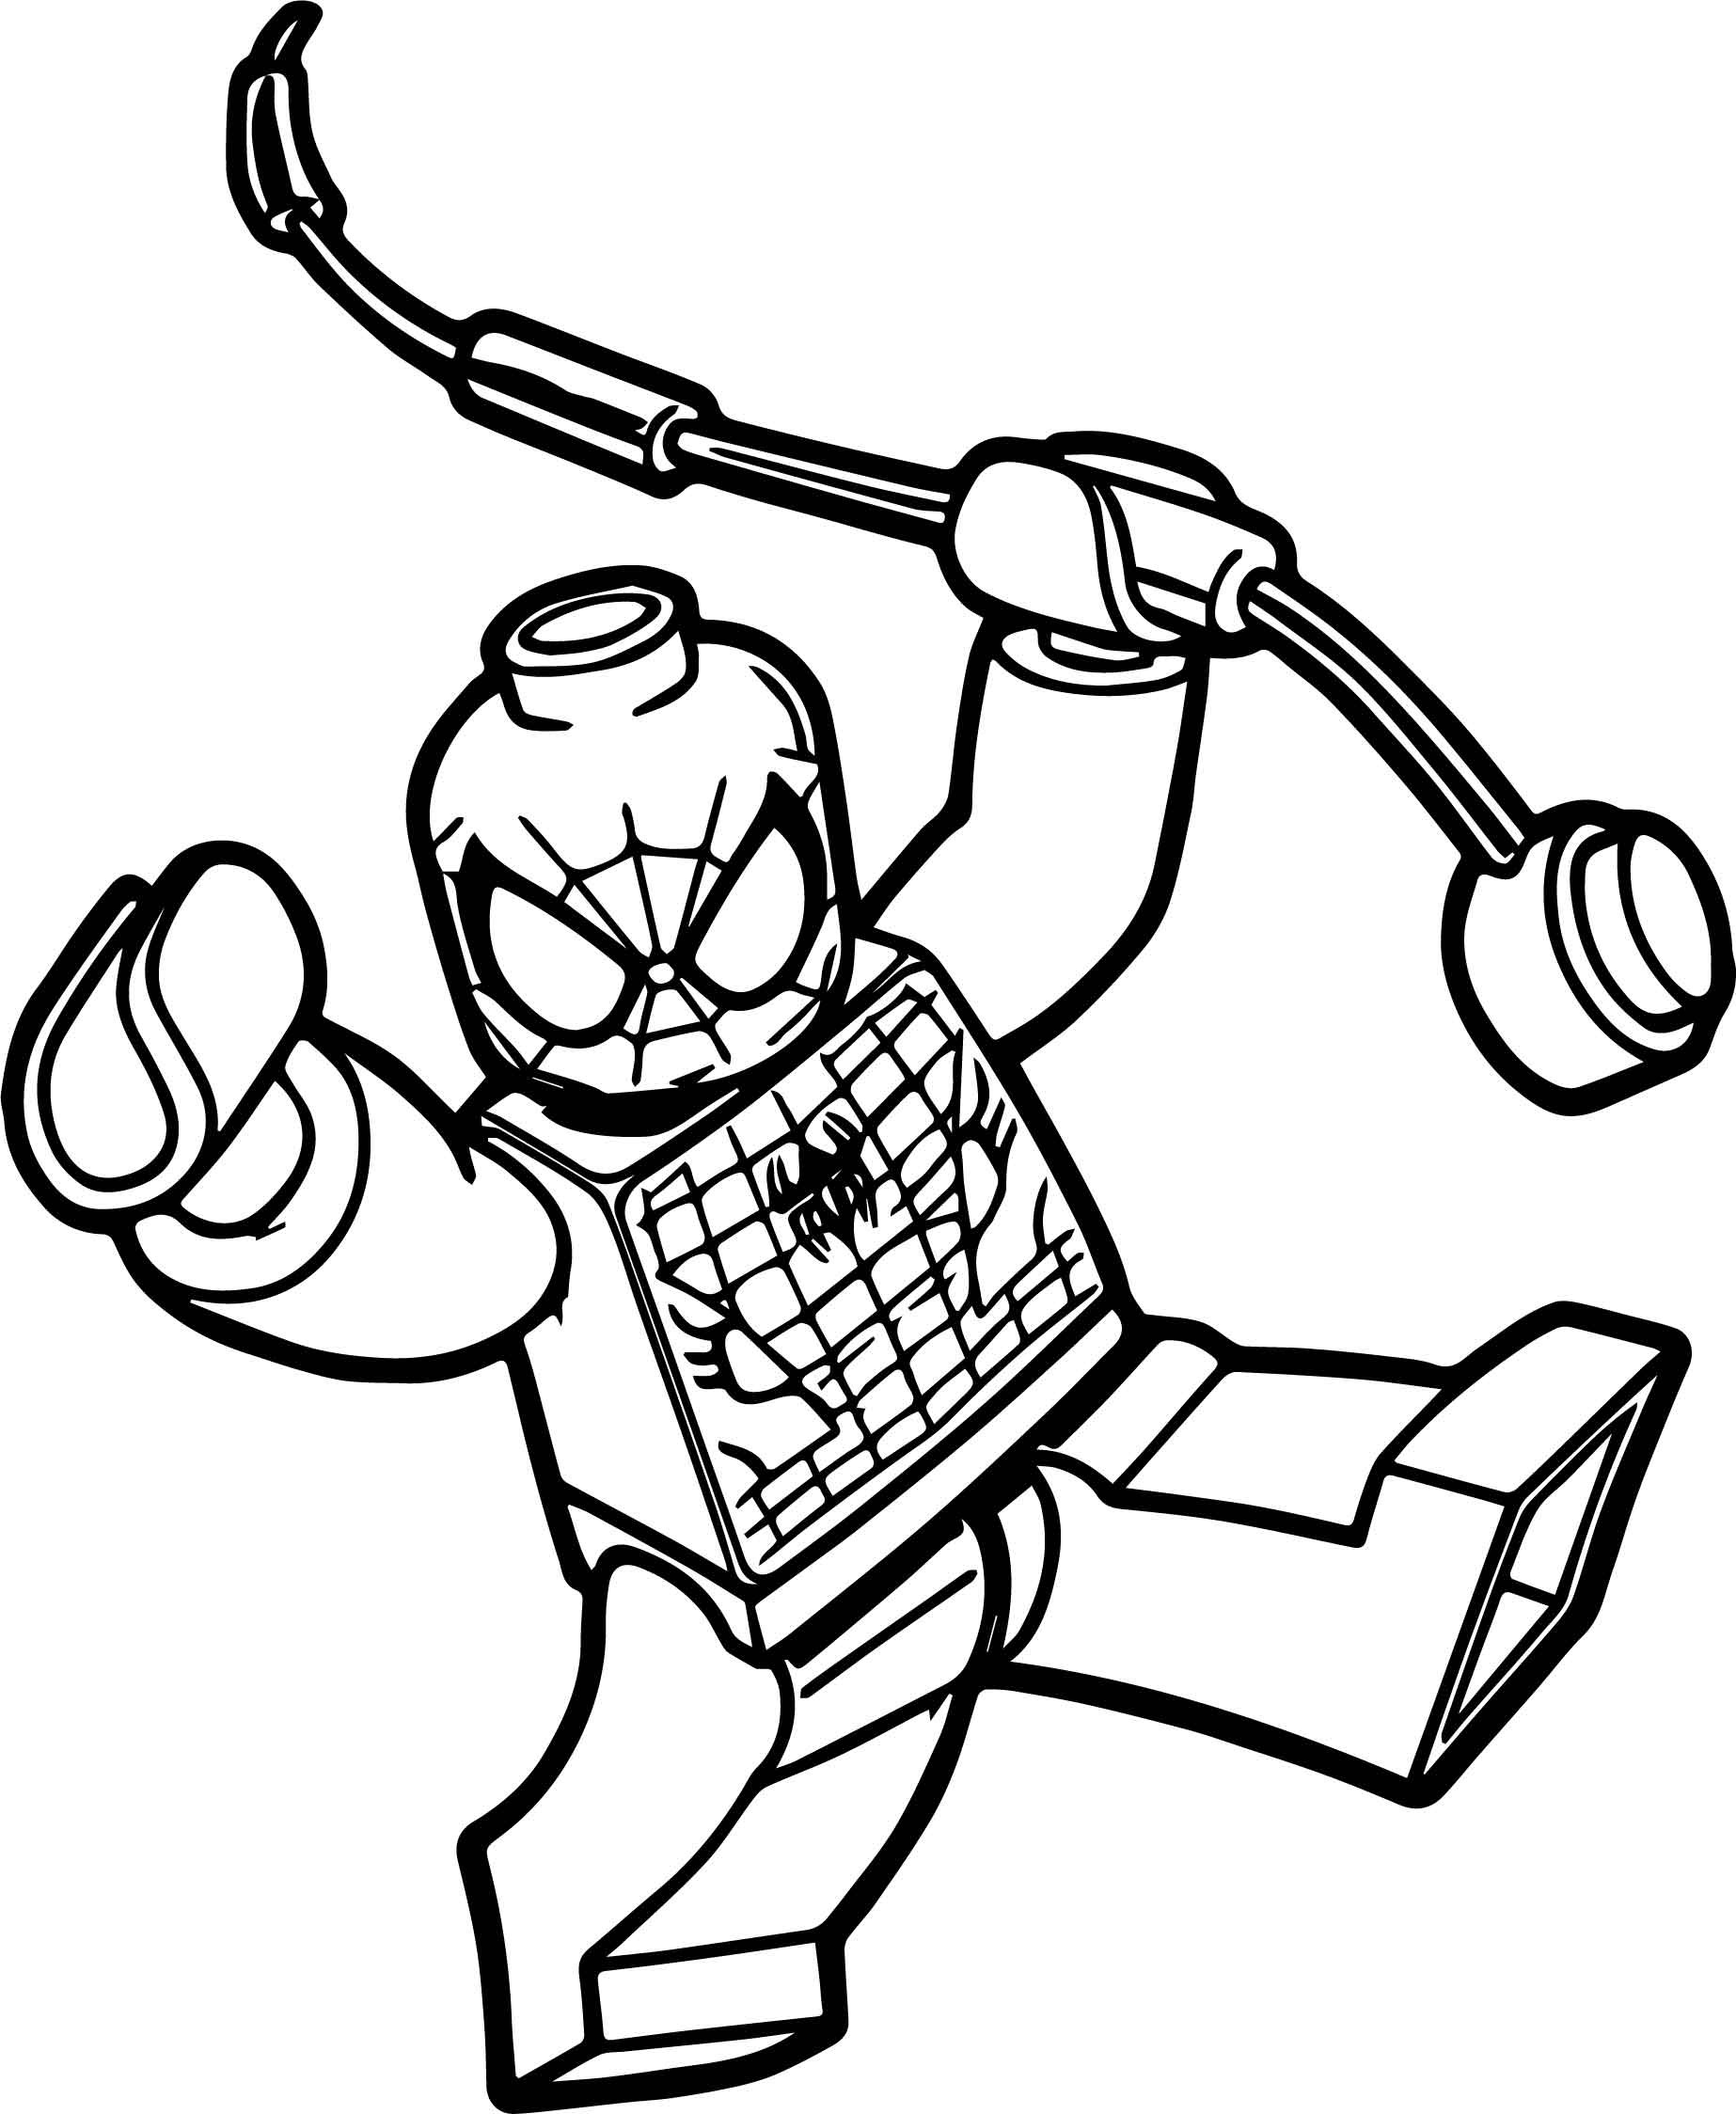 1846x2248 Lego Sports Coloring Pages Copy Box Spiderman Lego Spider Man